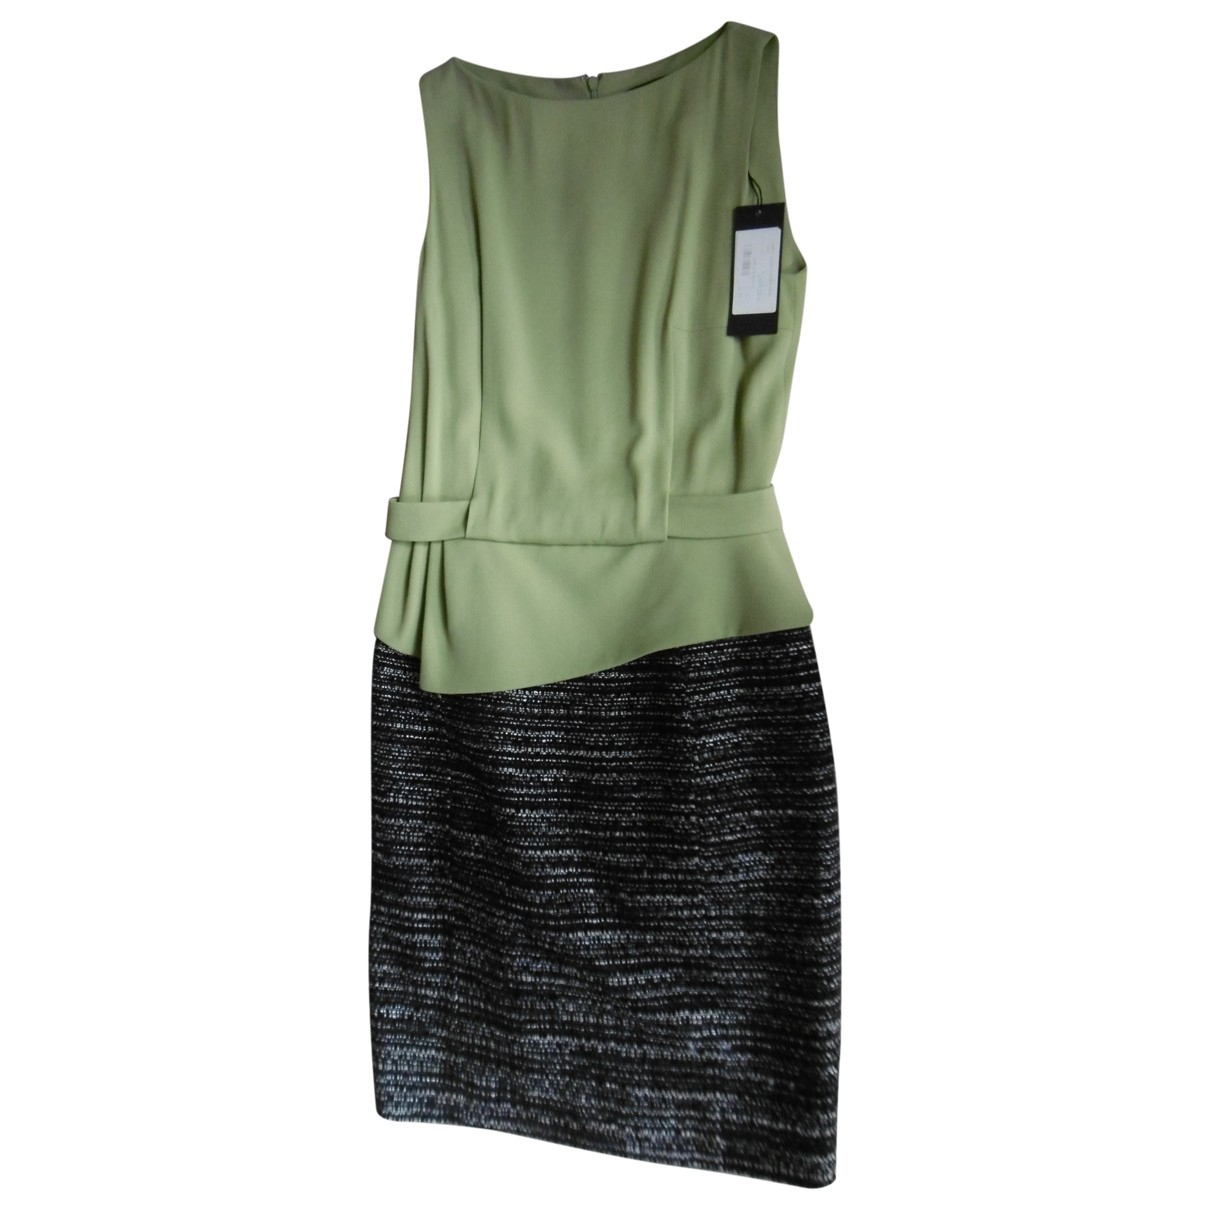 Elie Saab \N Green dress for Women 38